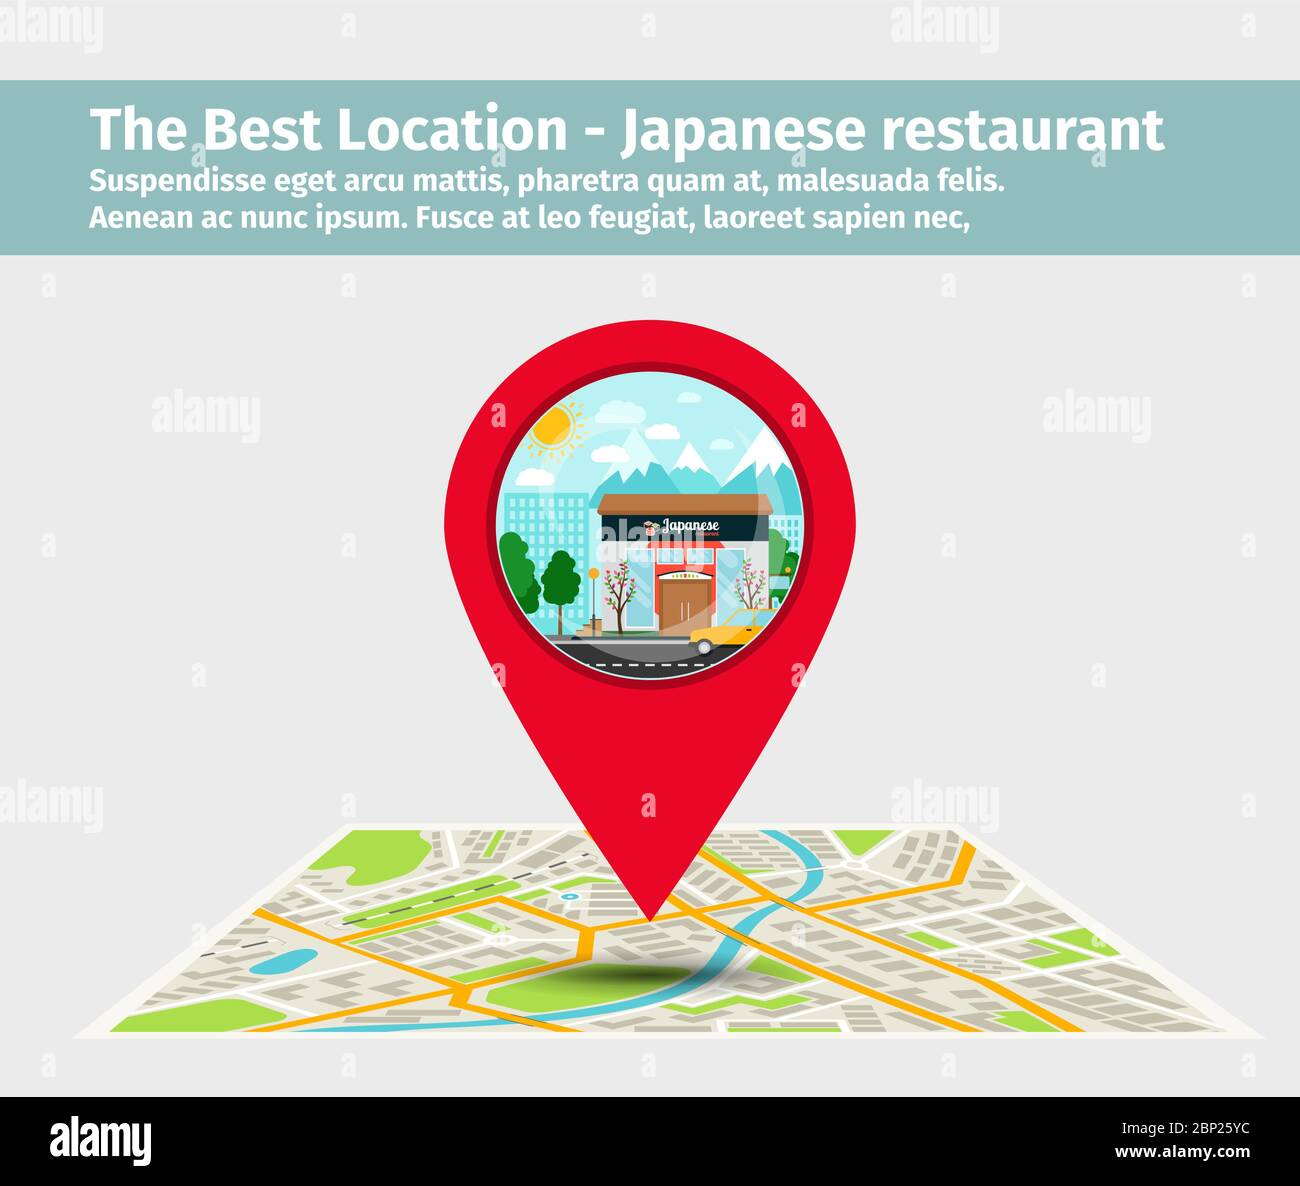 The Best Location Japanese Restaurant Point On The Map With Building Illustration Vector Stock Vector Image Art Alamy